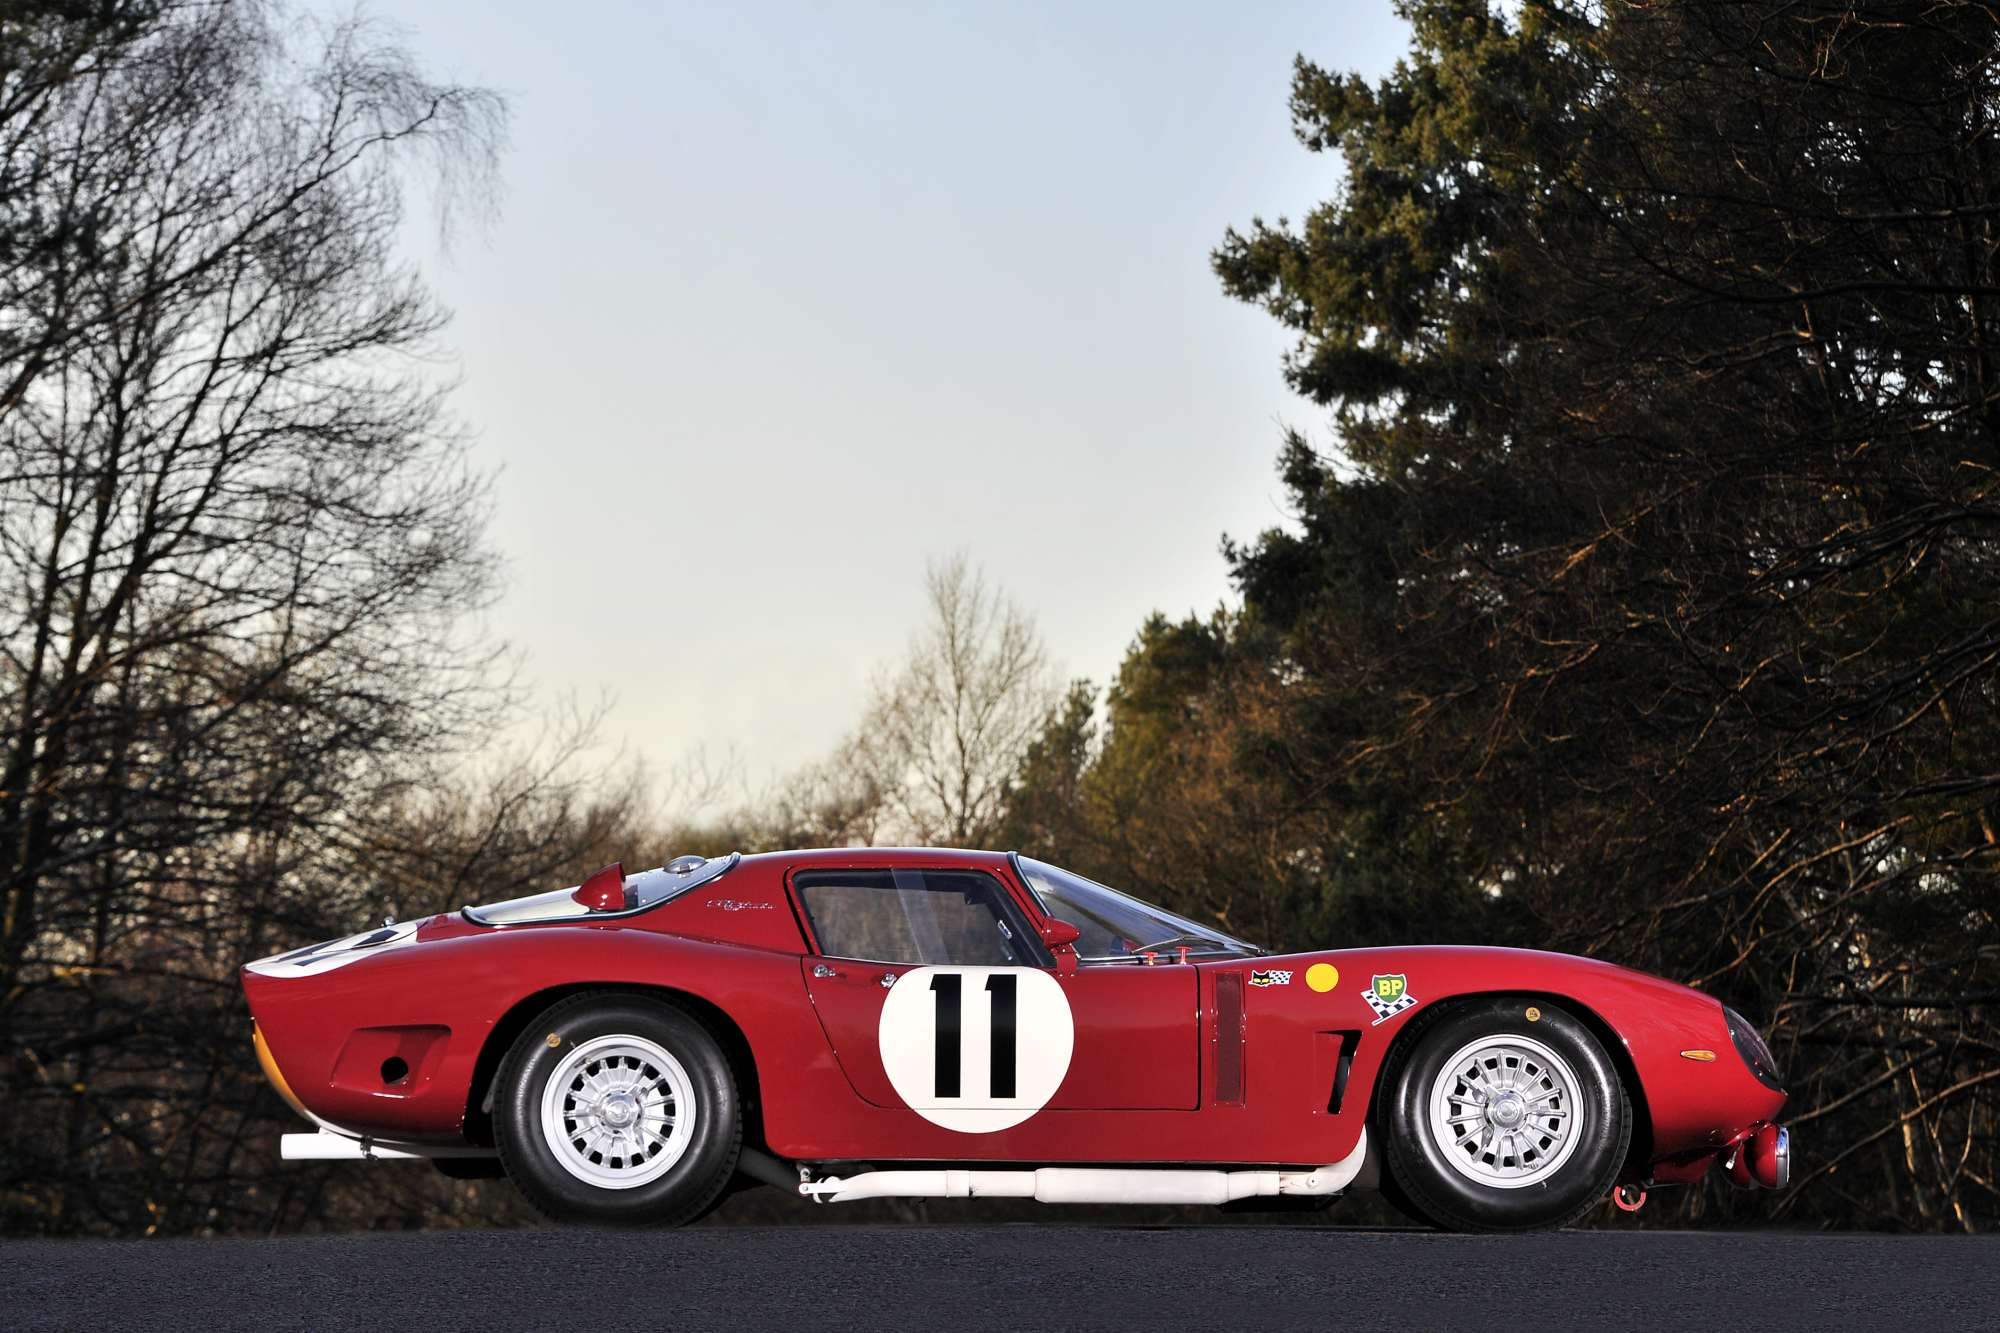 Race Car For Sale >> 1966 Bizzarrini Competition Lightweight Coupe | Previously Sold | FISKENS